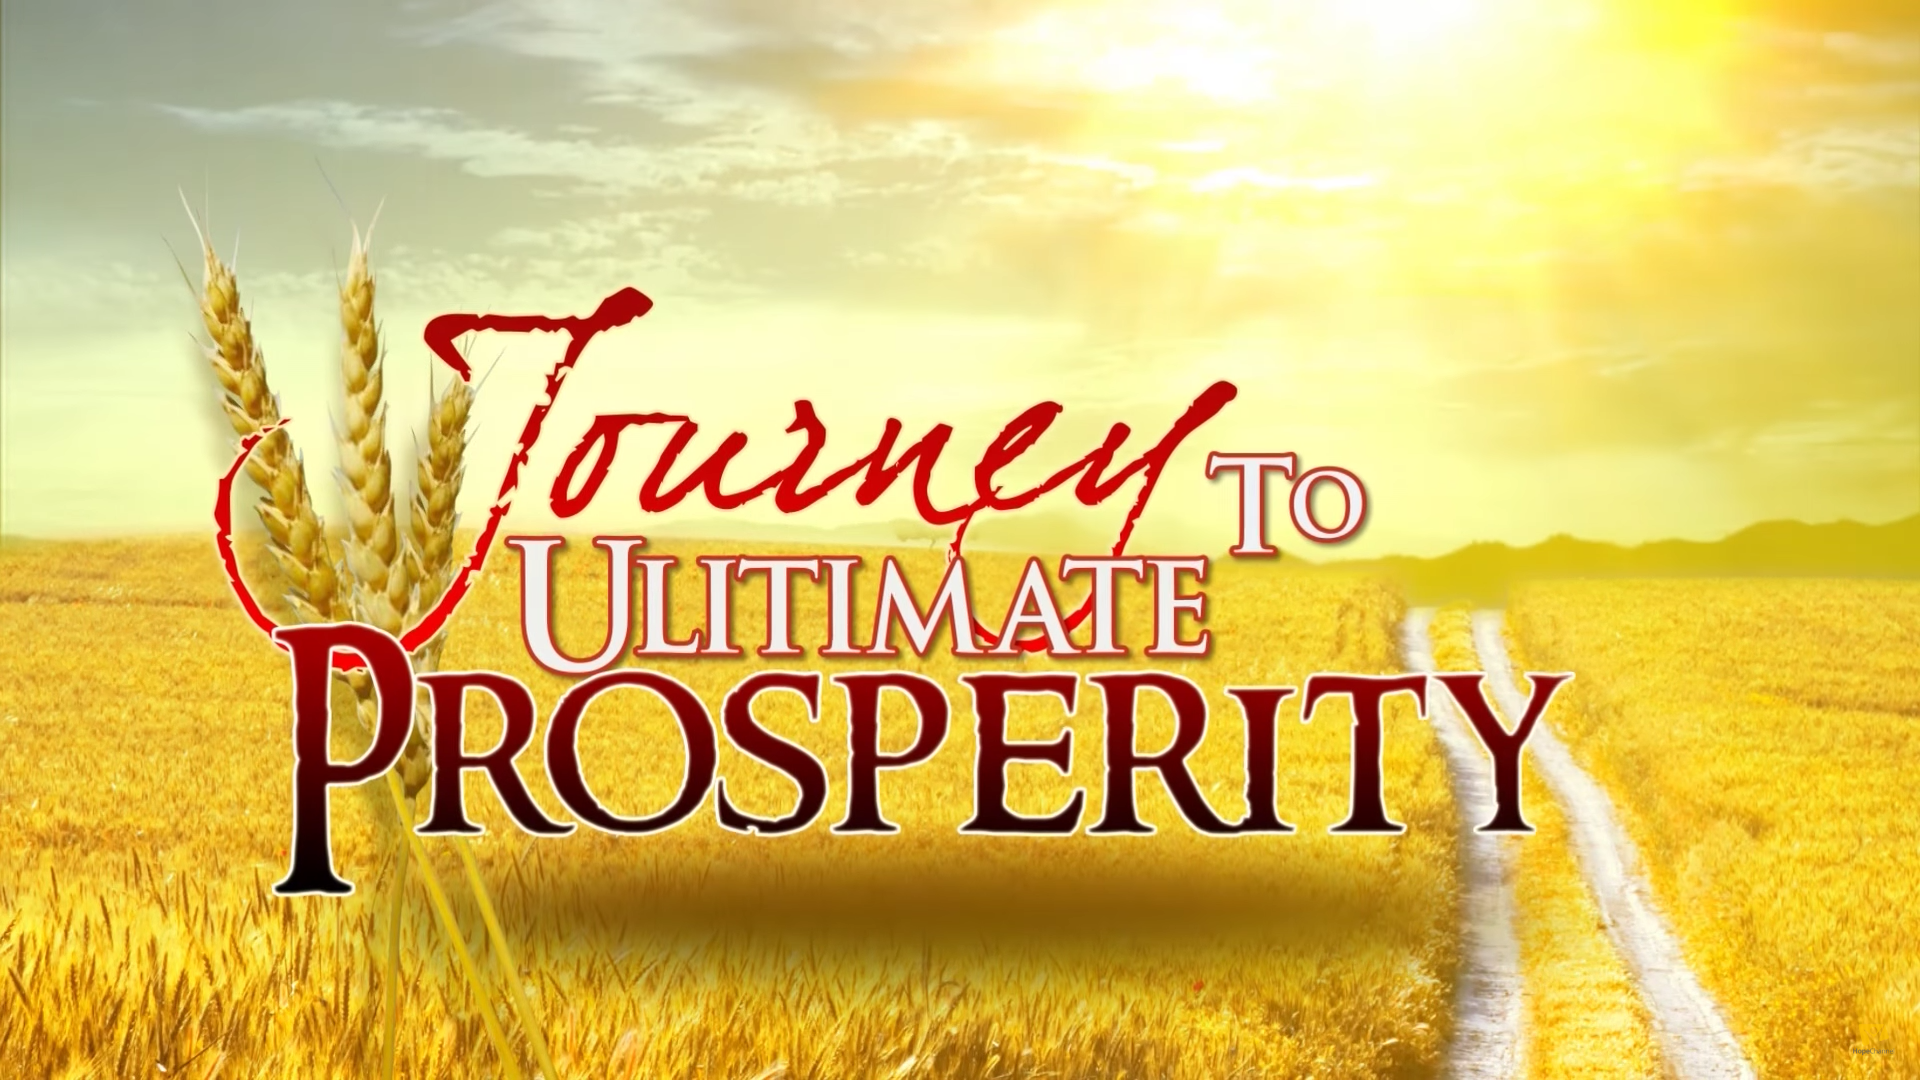 Episode 13: The Church God Bestows His Ultimate Prosperity